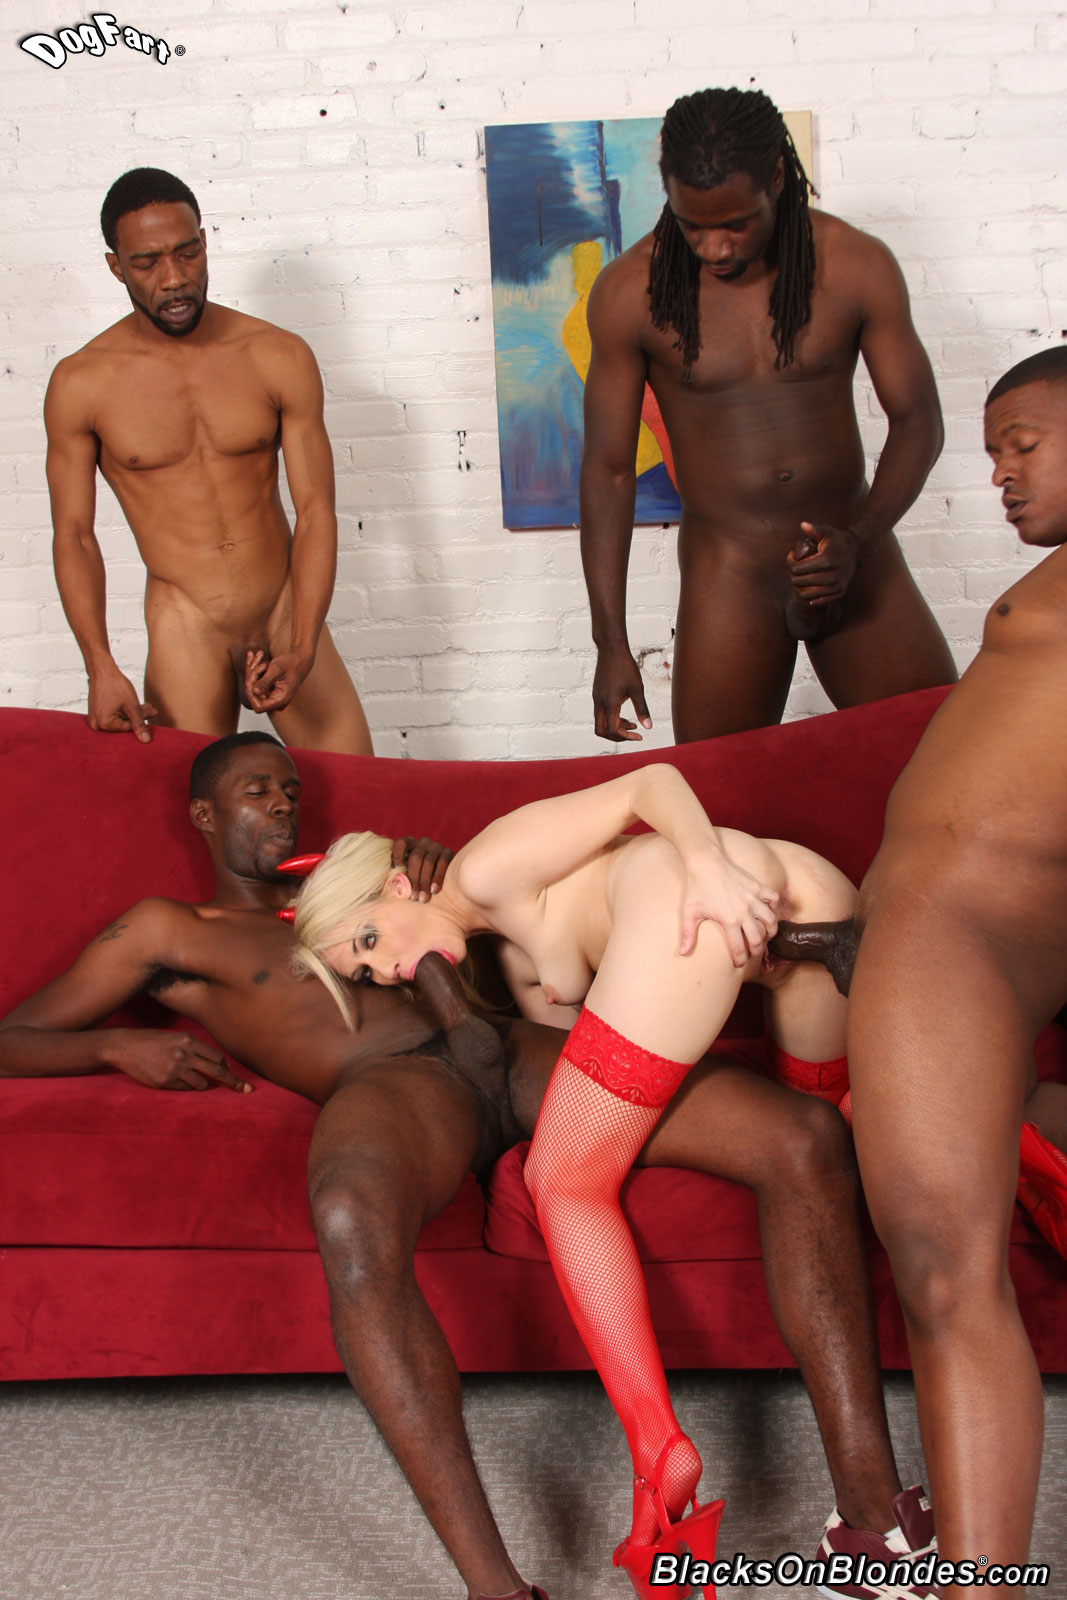 galleries blacksonblondes content sara monroe pic 19